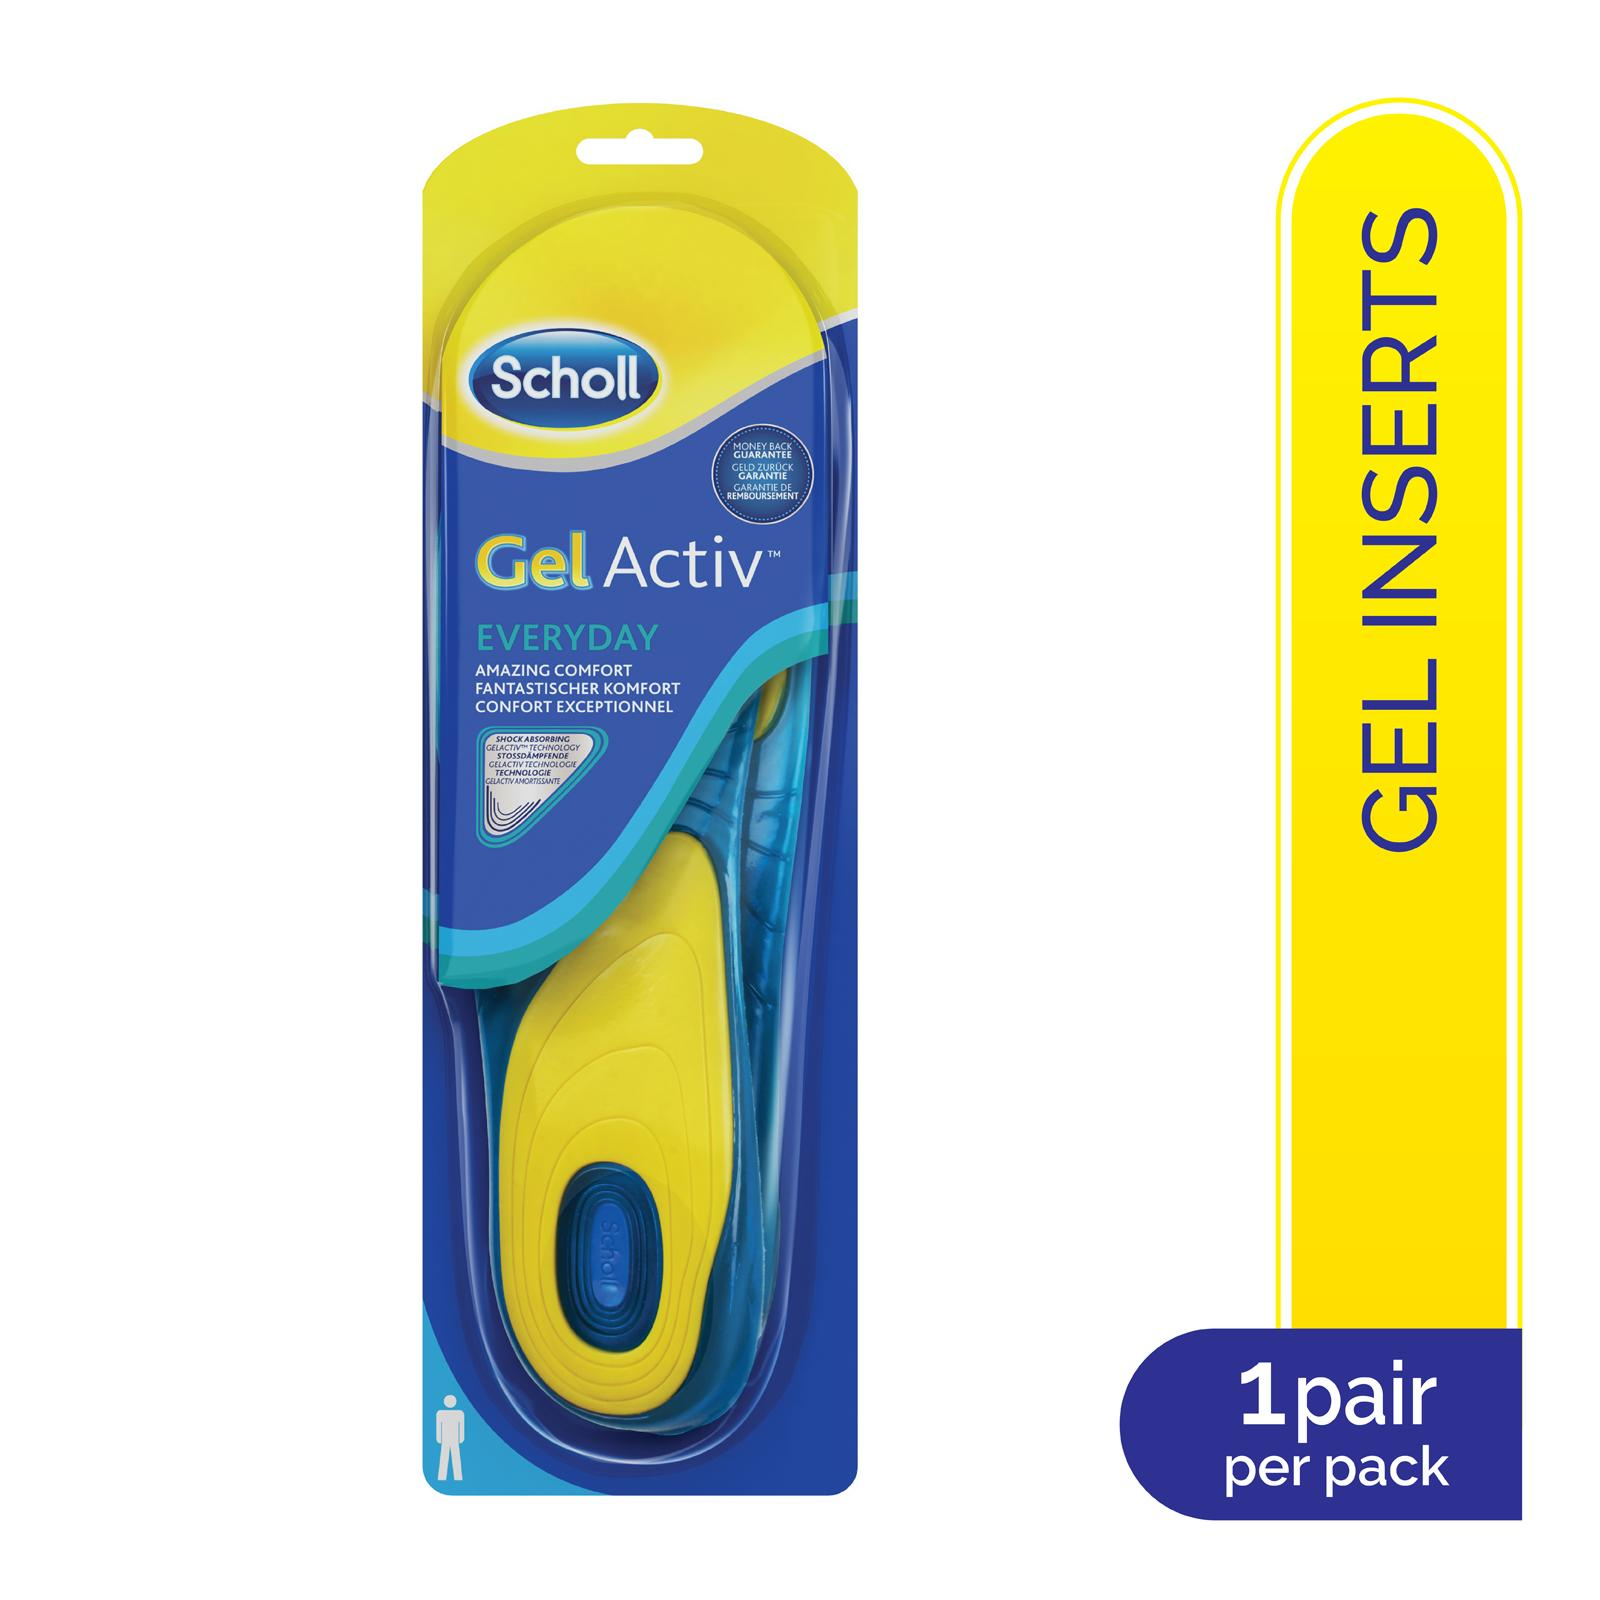 Scholl GelActiv Insoles - Everday Male